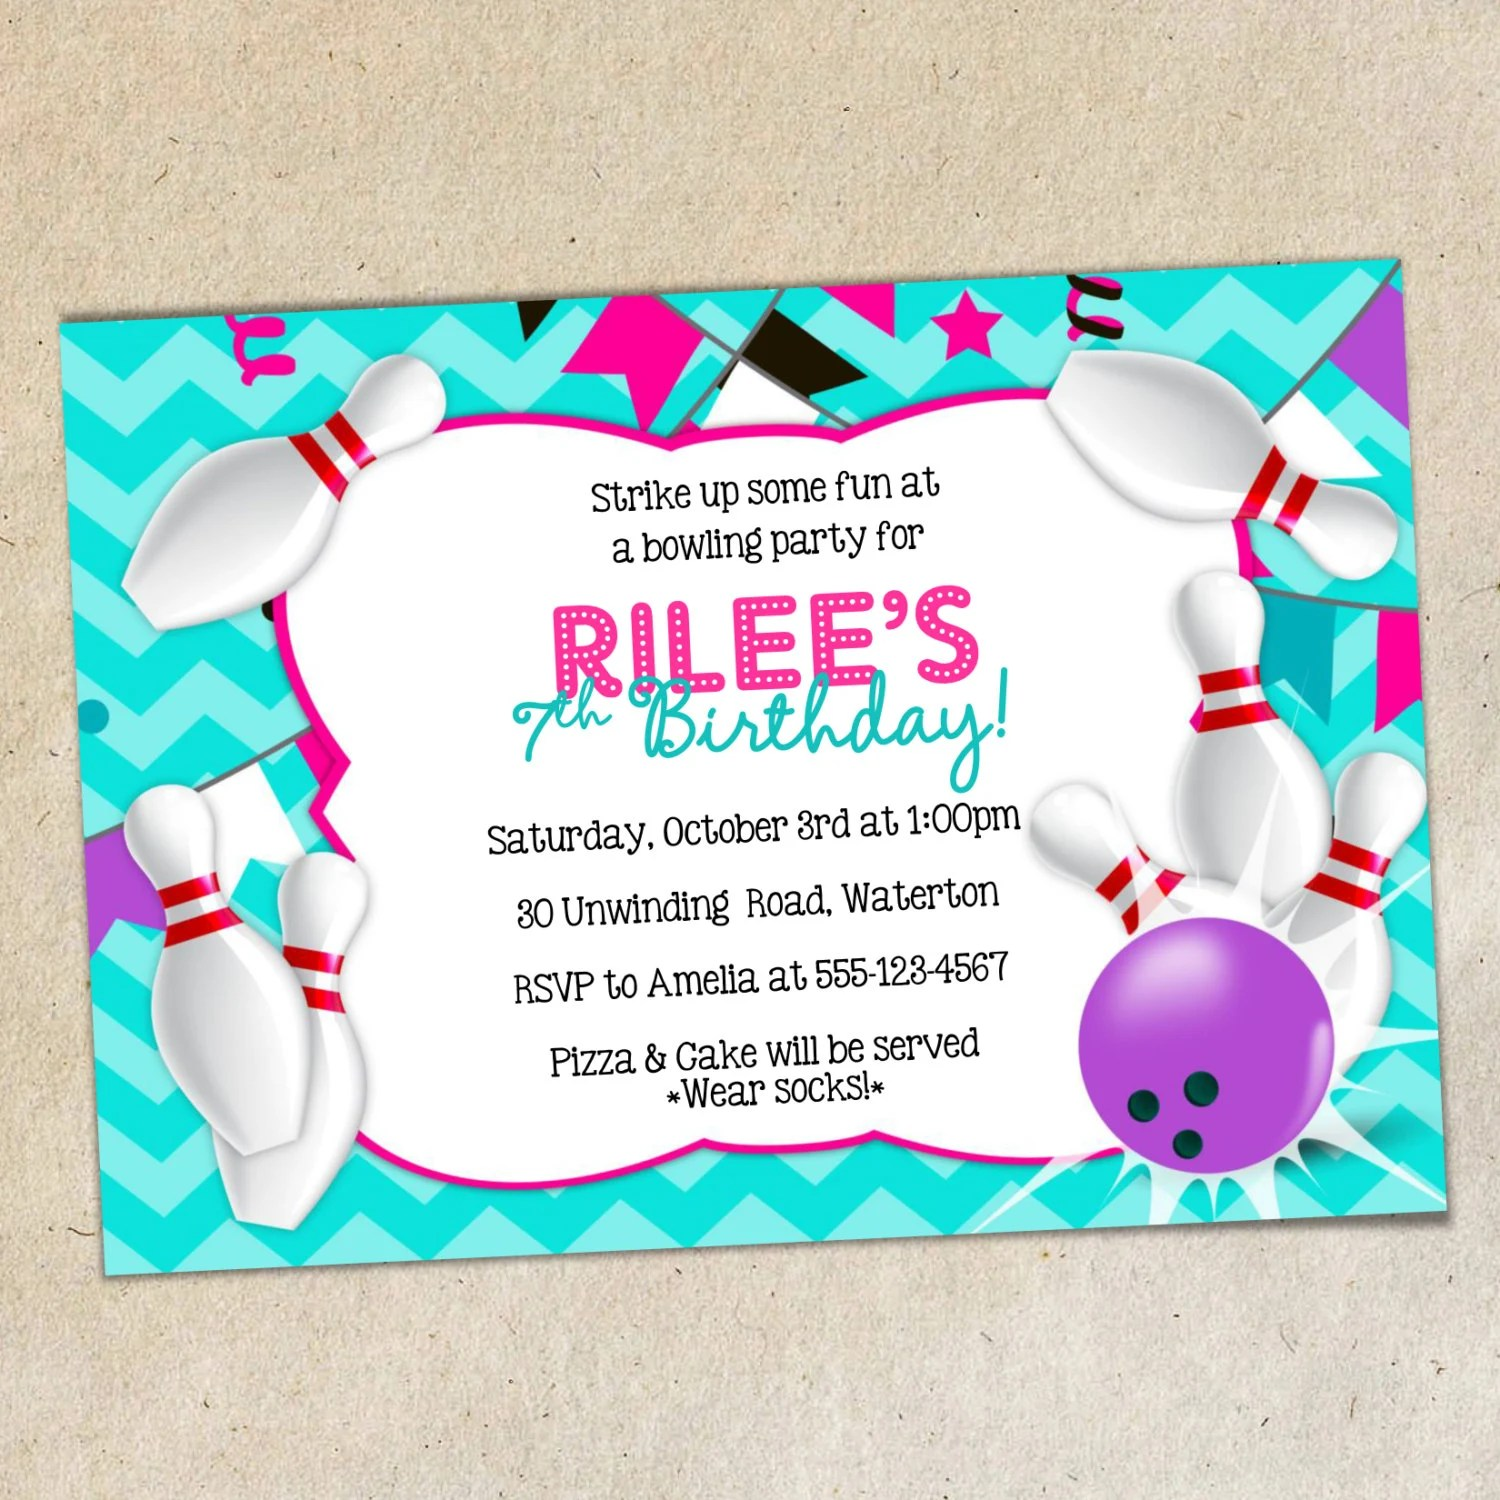 GIRLS Bowling Party Invitation TEMPLATE Girly Chevron Etsy